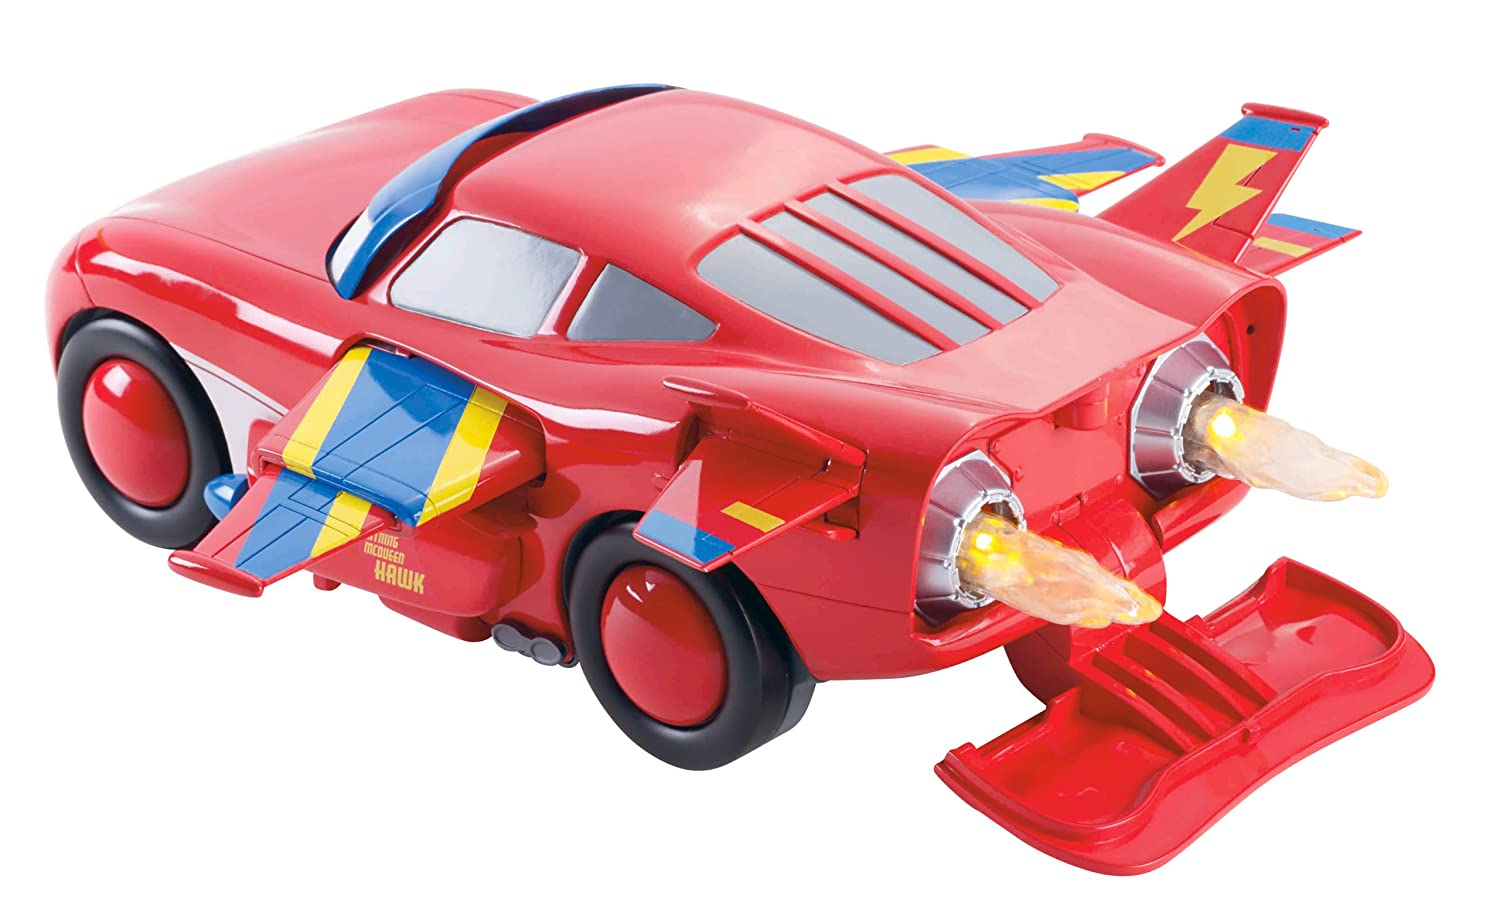 amazoncom cars lightning mcqueen hawk toys games - Flash Macqueen